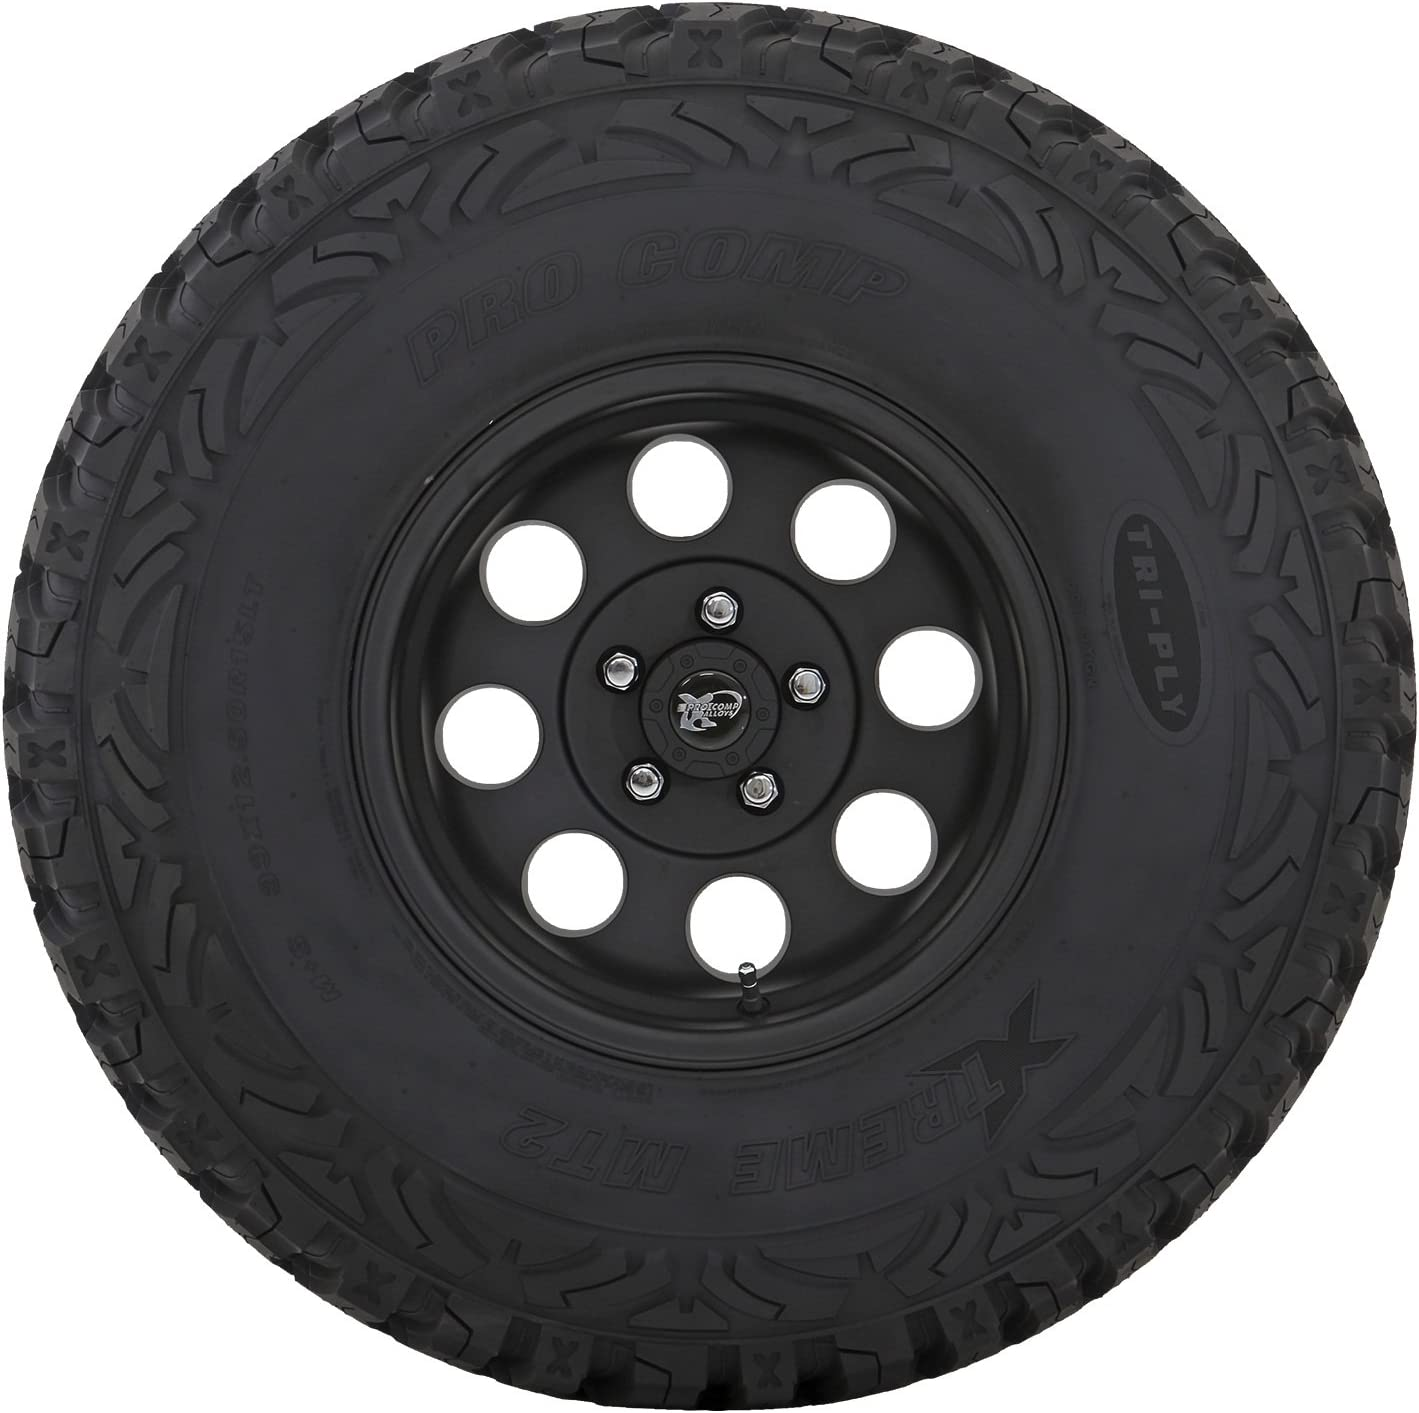 Amazon Com Pro Comp Xtreme Mt2 Radial Tire 315 70r17 Automotive